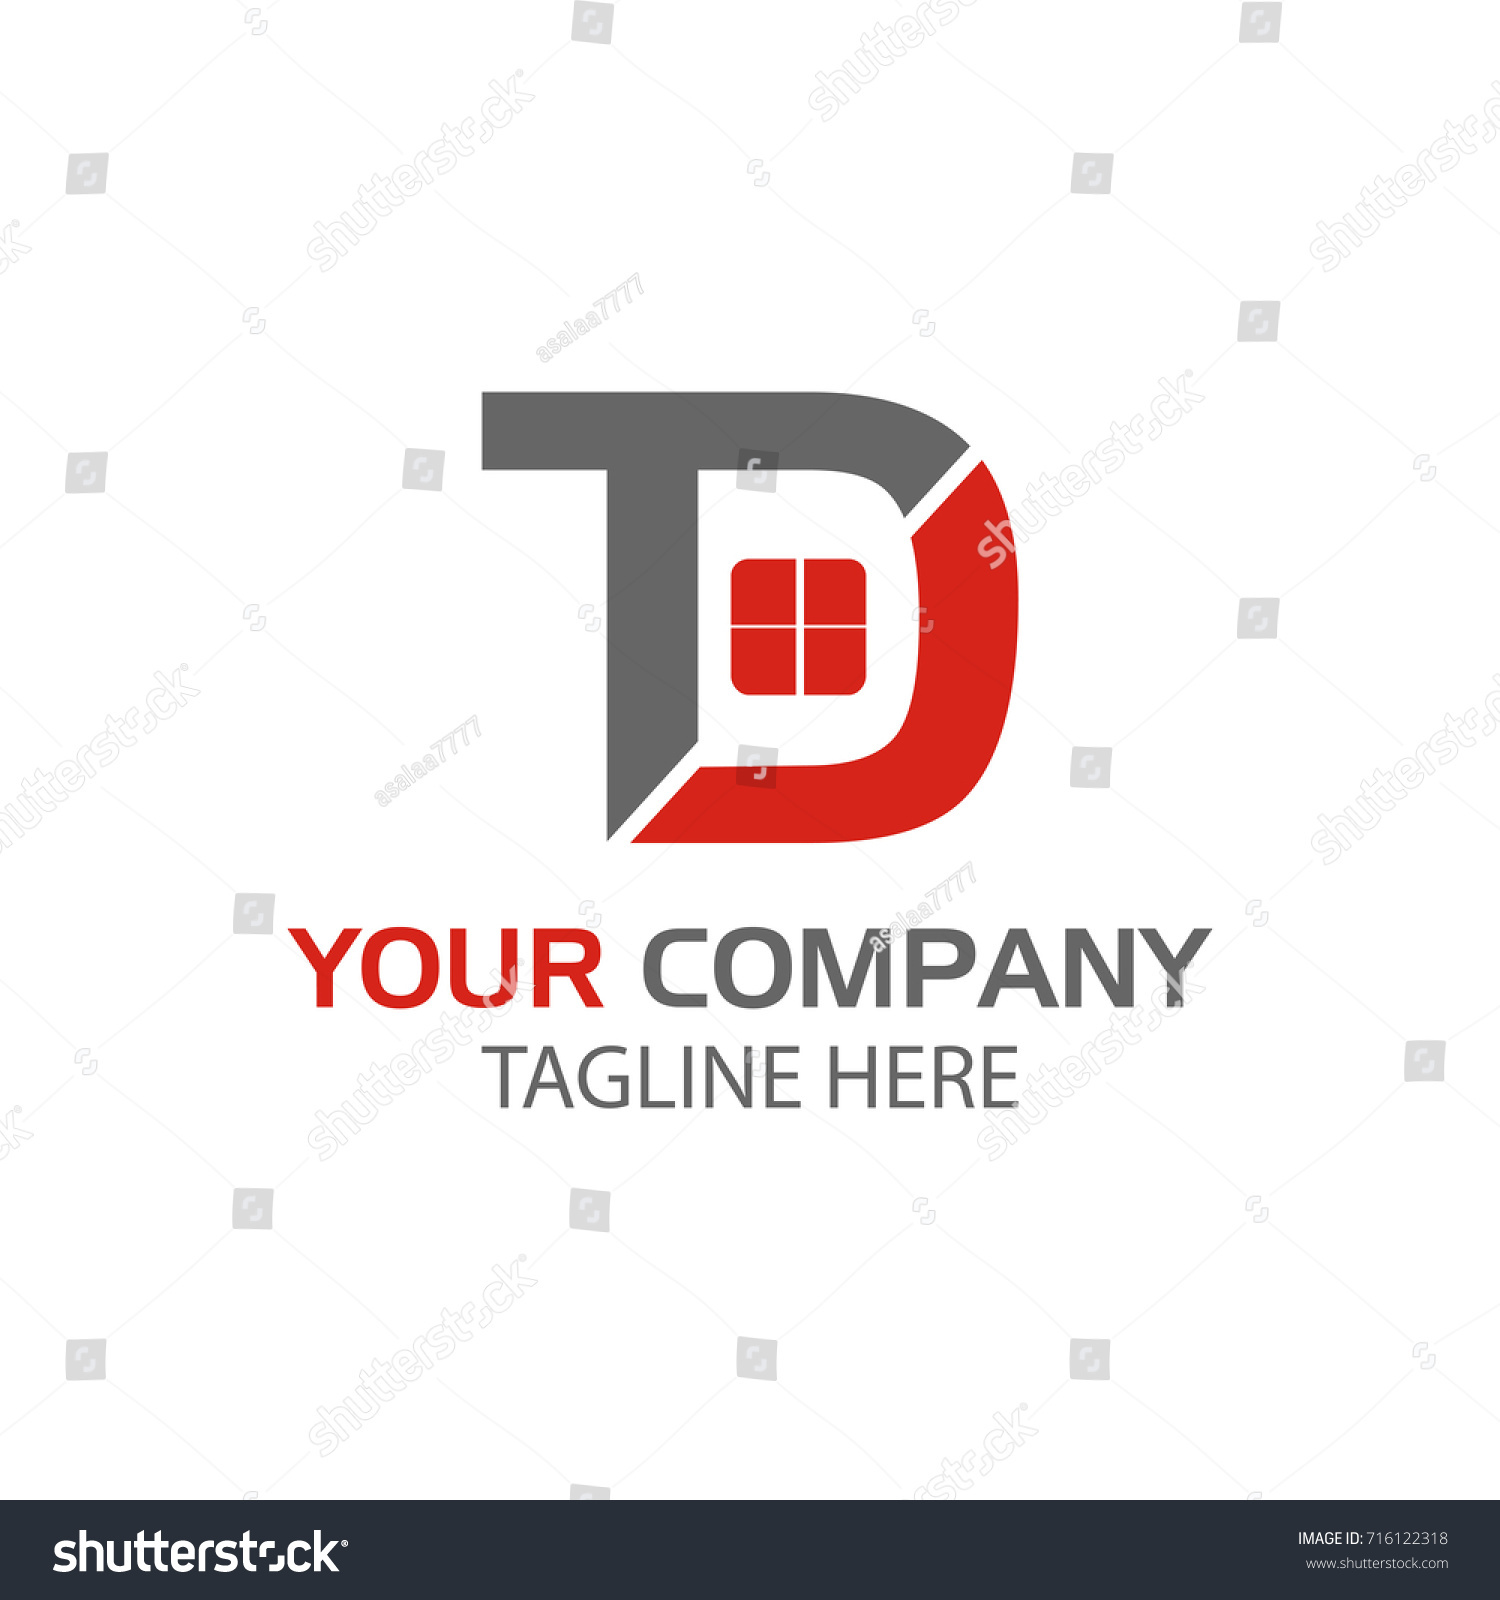 Creative Letter TD Logo Design Home Stock Vector HD (Royalty Free ...